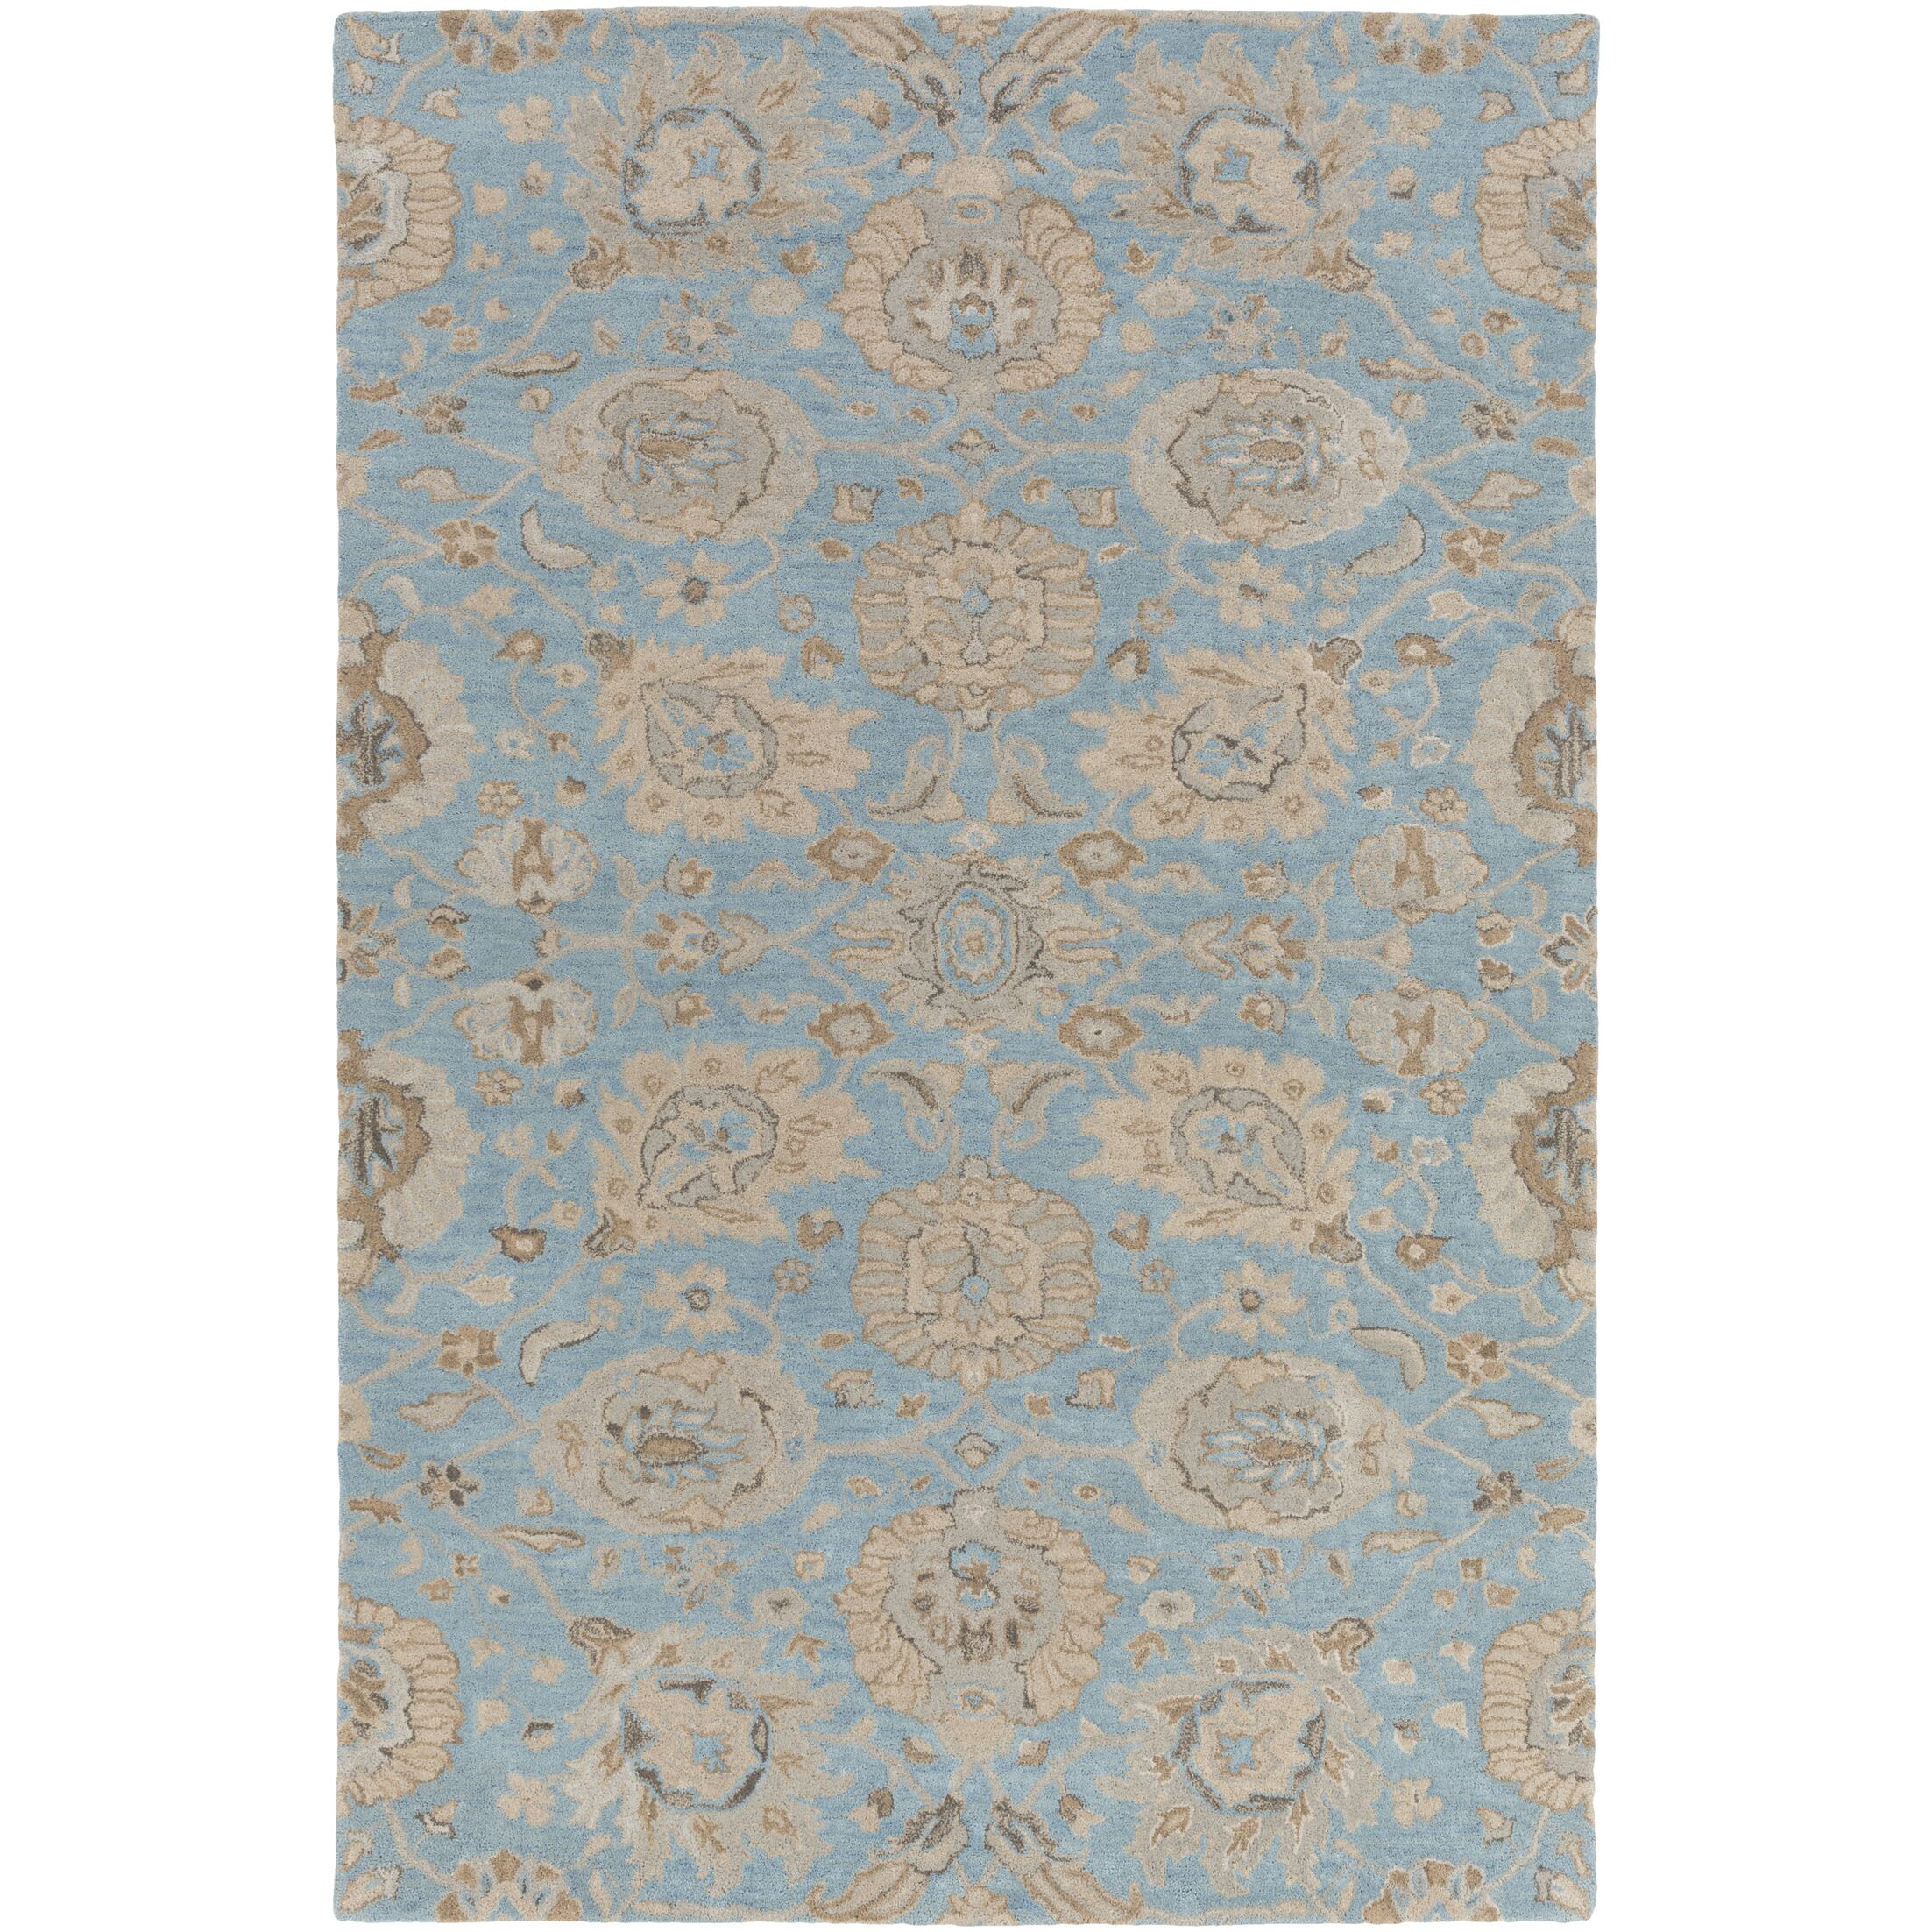 Ivan Hand-Tufted Area Rug Rug Size: Rectangle 9' x 13'